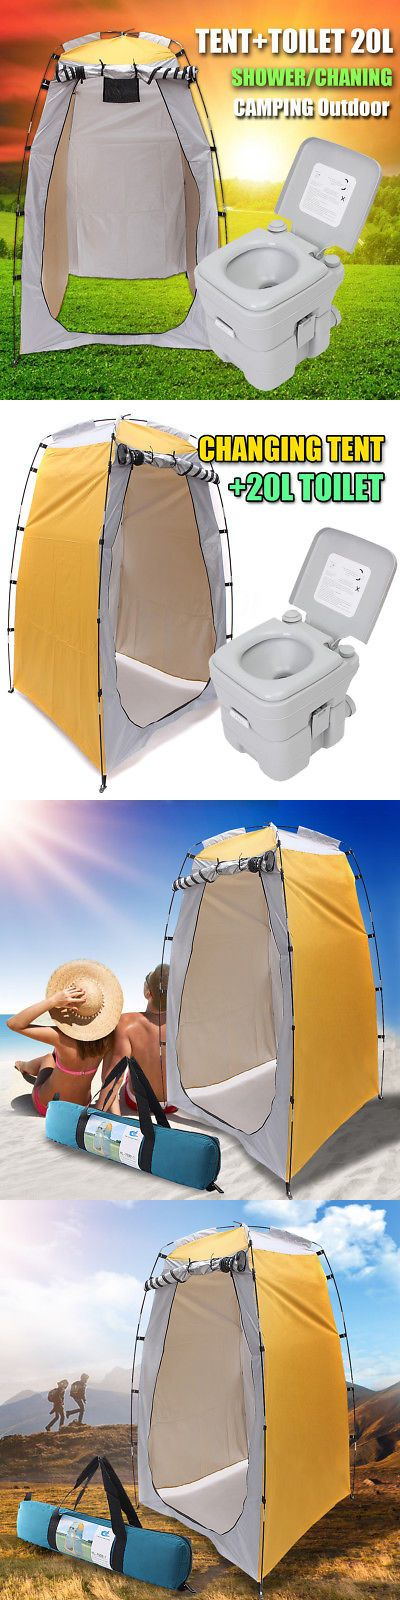 Portable Toilets and Accessories 181397: Portable Toilet Camping 5-Gallon 20L Camp Flush Travel Outdoor Hiking Potty Seat -> BUY IT NOW ONLY: $85.99 on eBay!